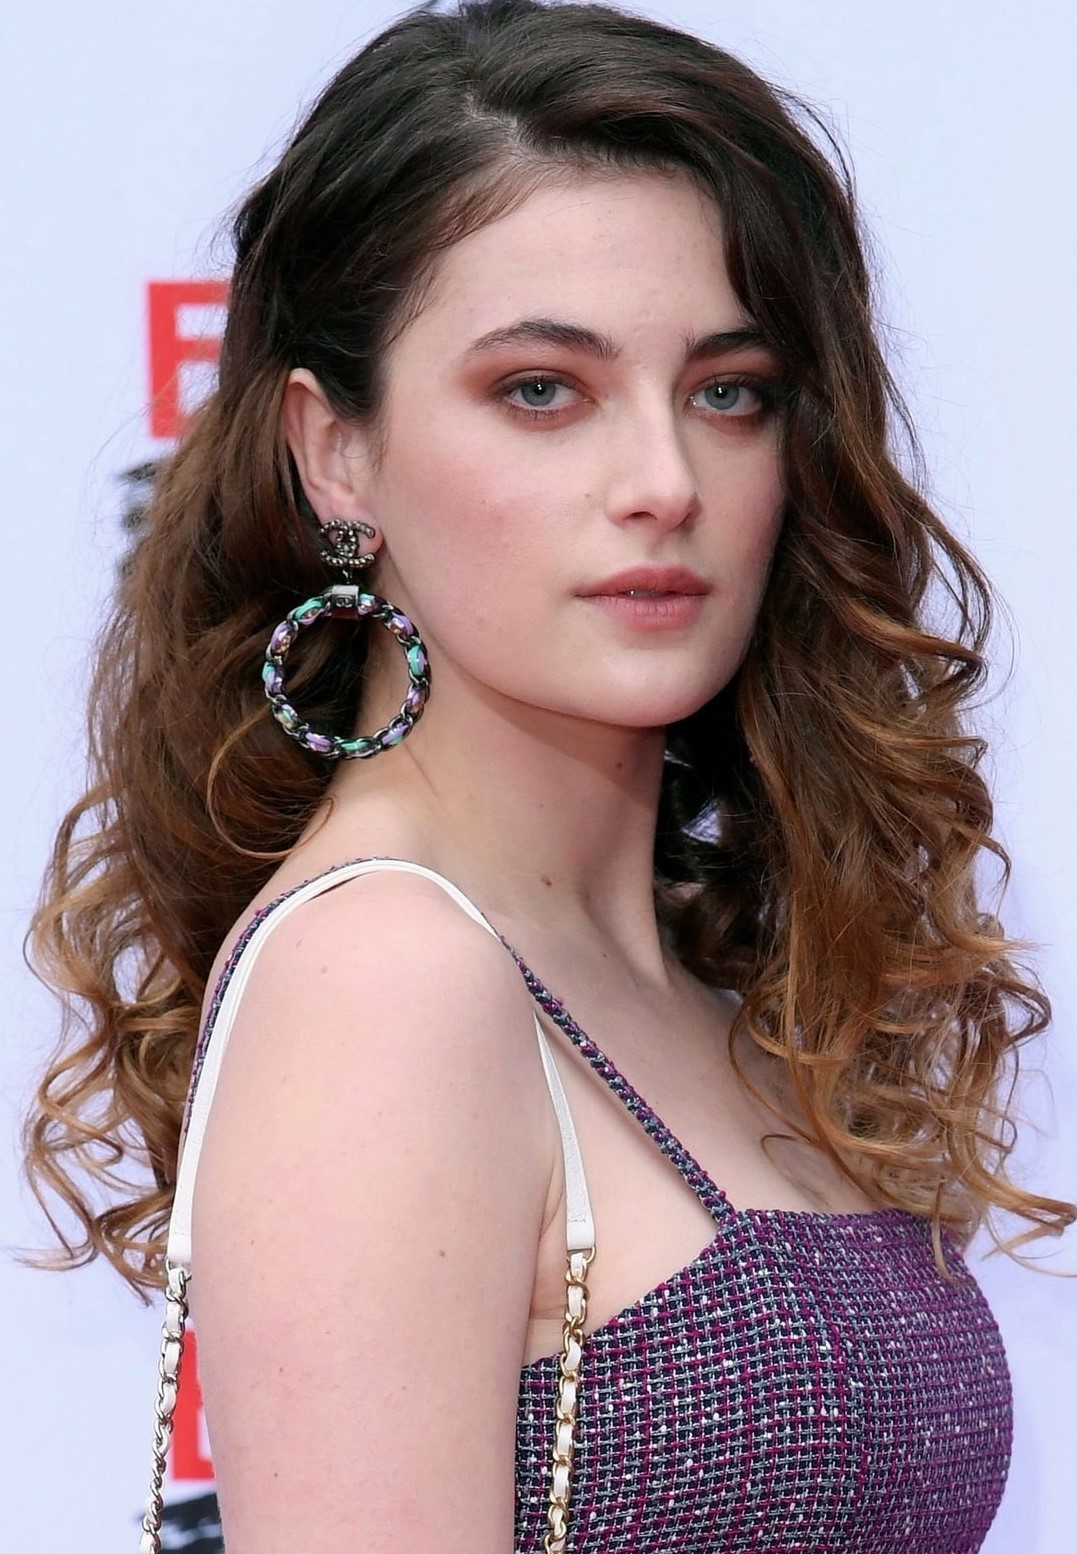 Millie Brady nude (42 pictures) Ass, 2020, lingerie